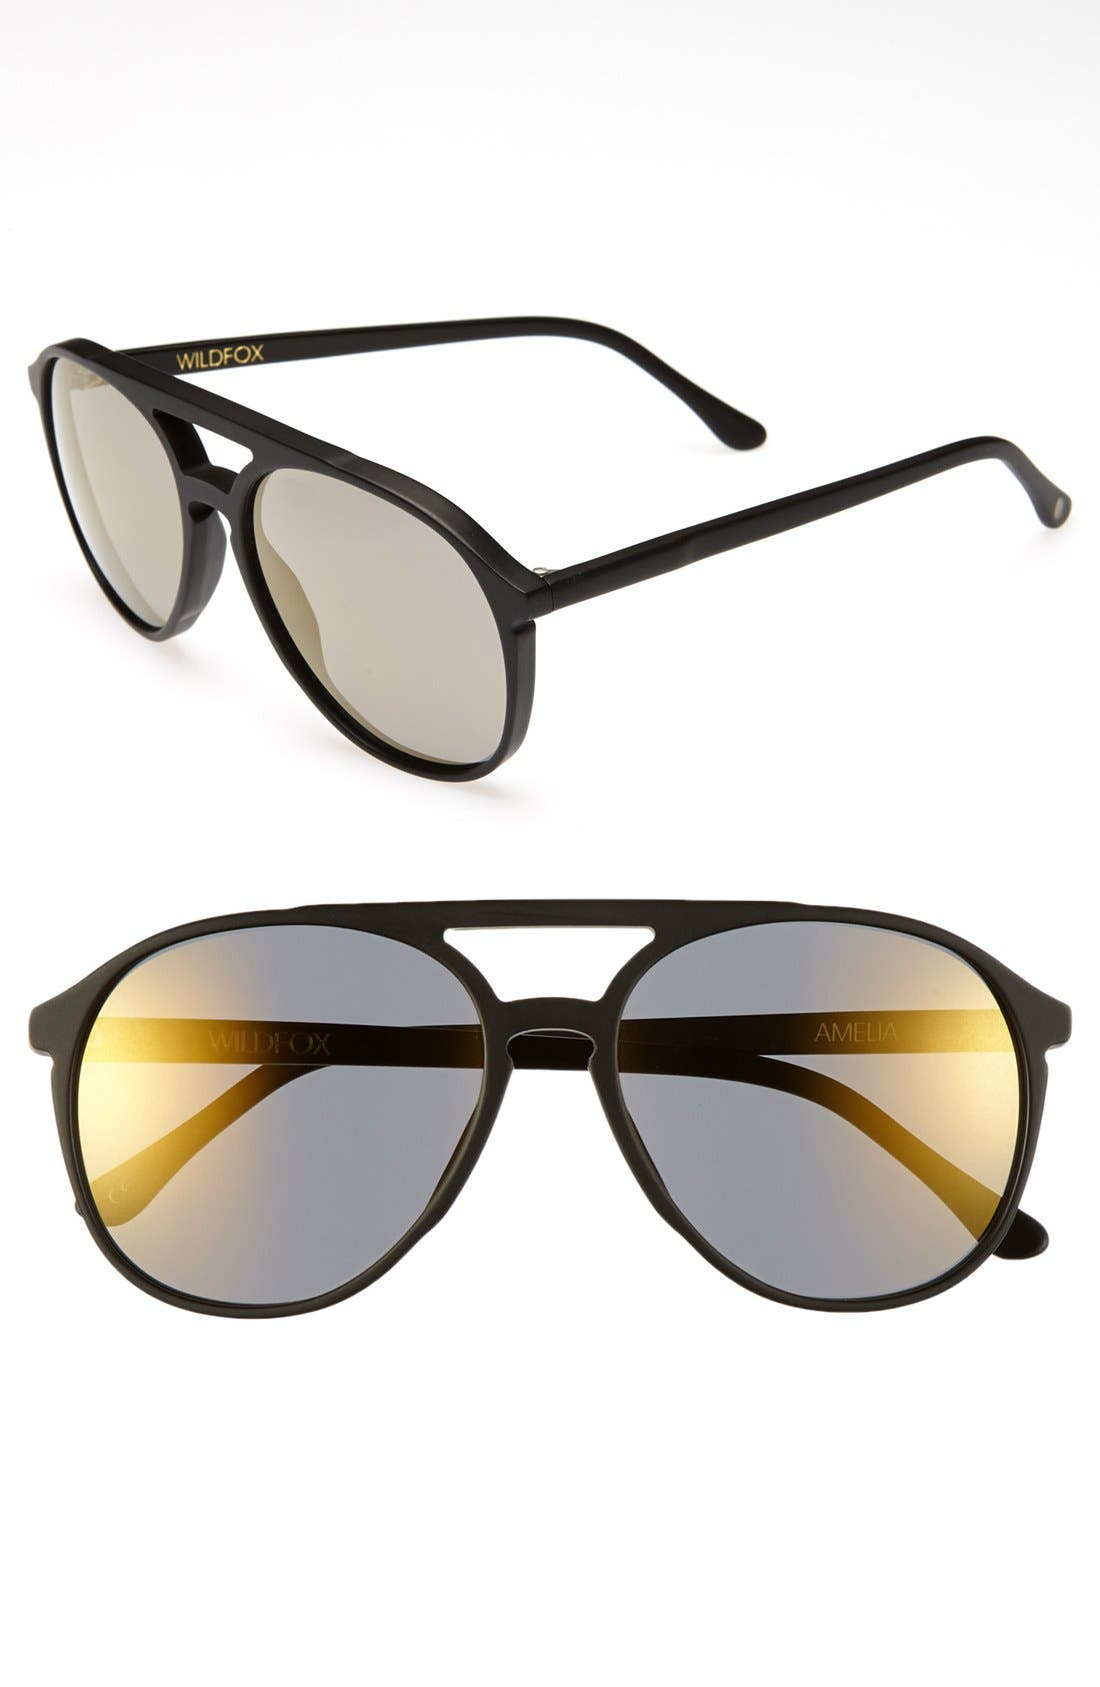 Alternate Image 1 Selected - Wildfox 'Amelia Deluxe' Sunglasses